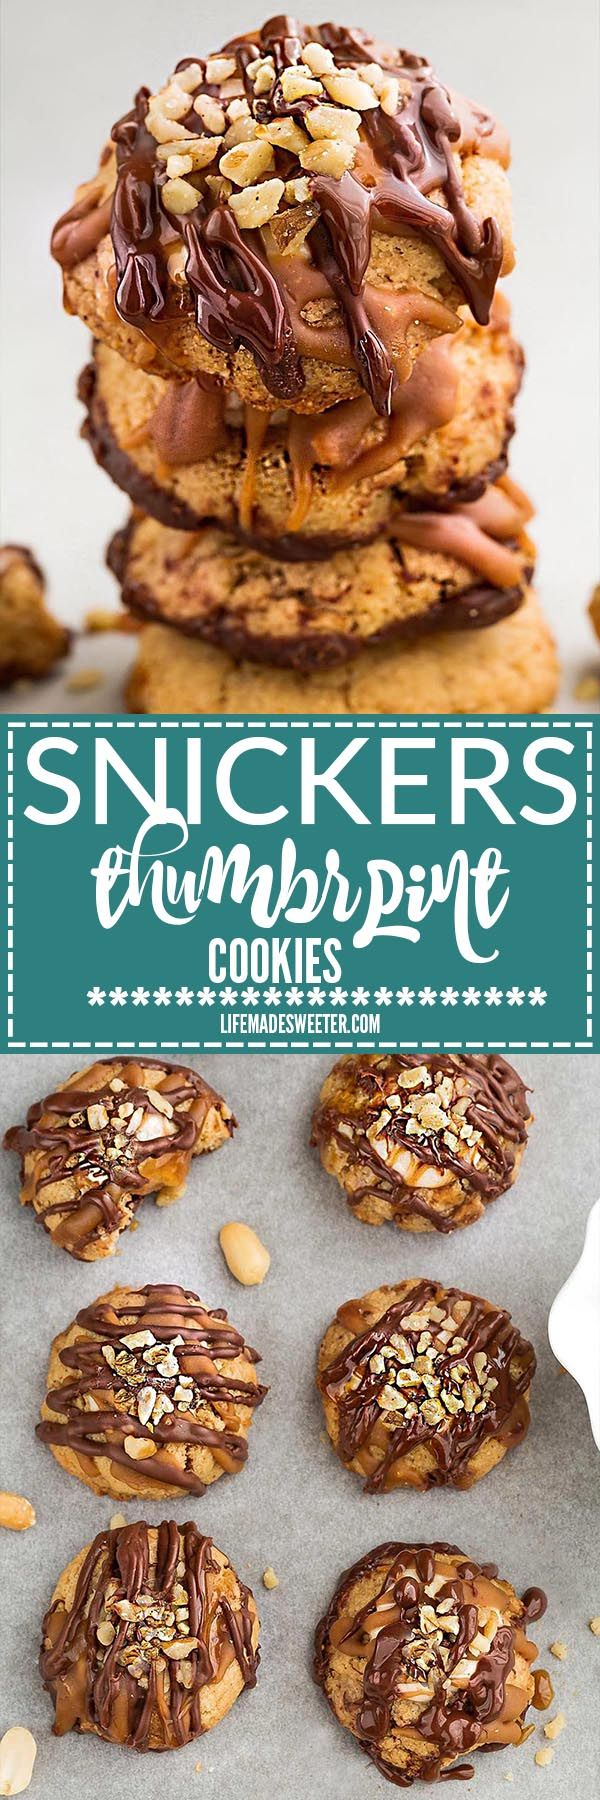 Peanut Butter Caramel SnickersThumbprint Cookies make the perfect addition to your holiday cookie batter. Best of all, it's so easy to make with a 3 ingredient soft and chewy peanut butter cookie, a marshmallow gooey nougat filling and a drizzle of melted chocolate and caramel with chopped peanuts sprinkled in the center.